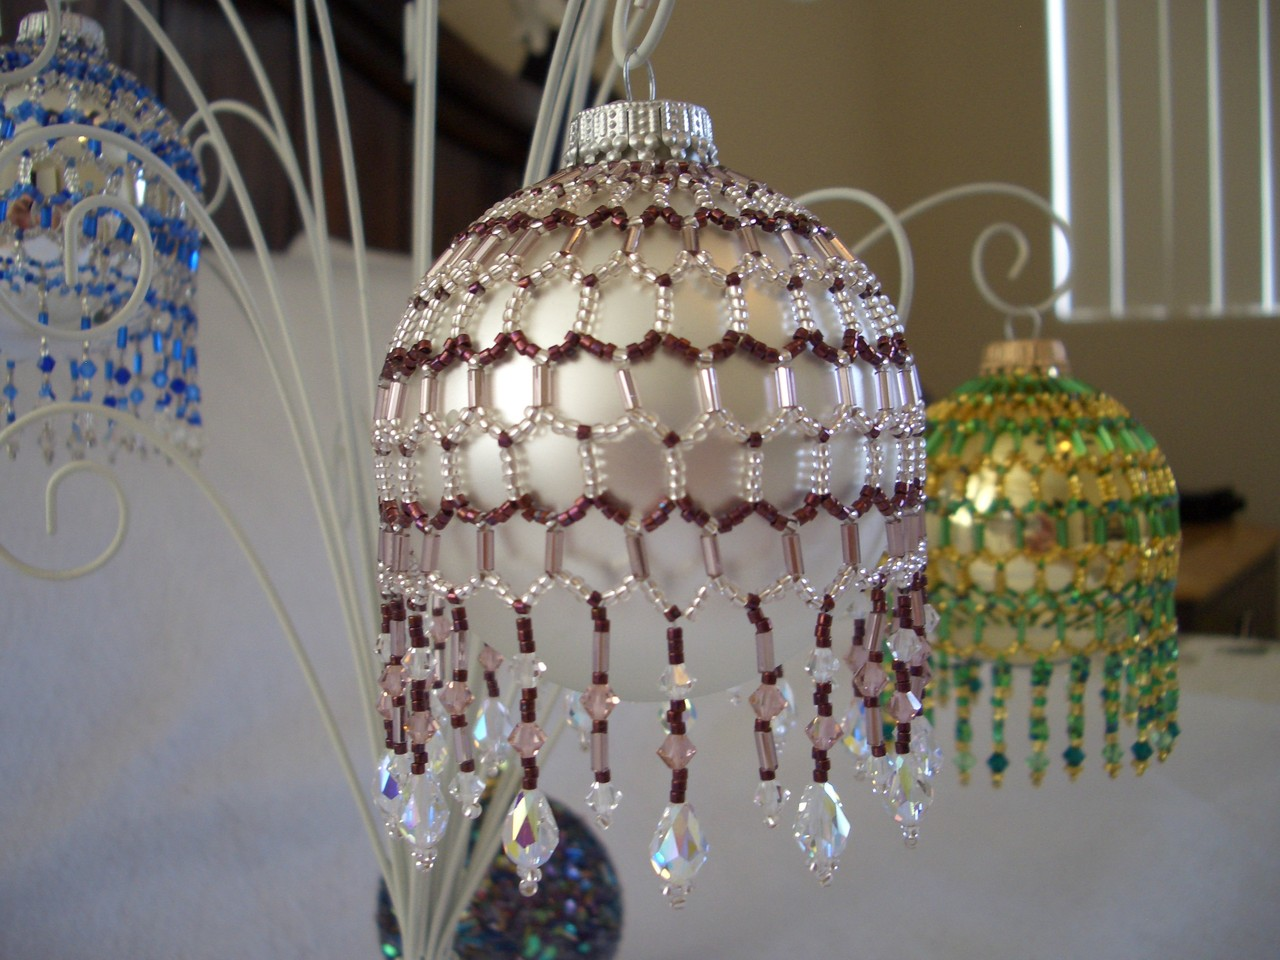 Hand Stitched Beaded Net Design Ornament Covers